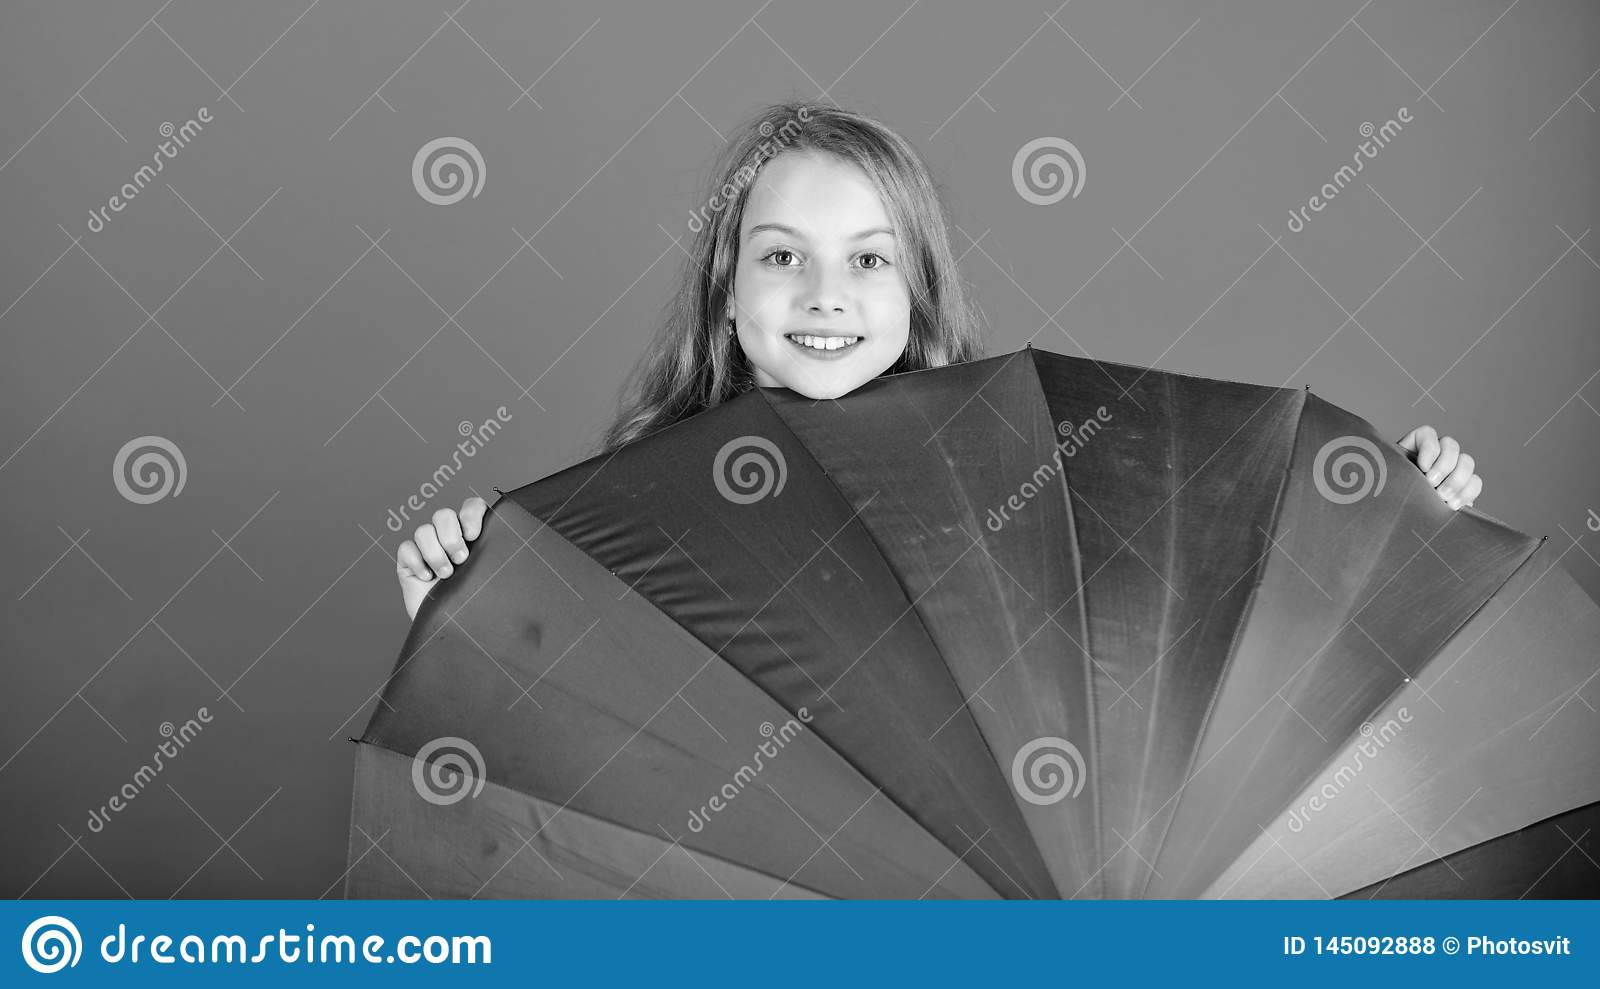 Brighten up life. Kid peek out colorful rainbow umbrella. Color your life. Girl cheerful hide behind umbrella. Colorful